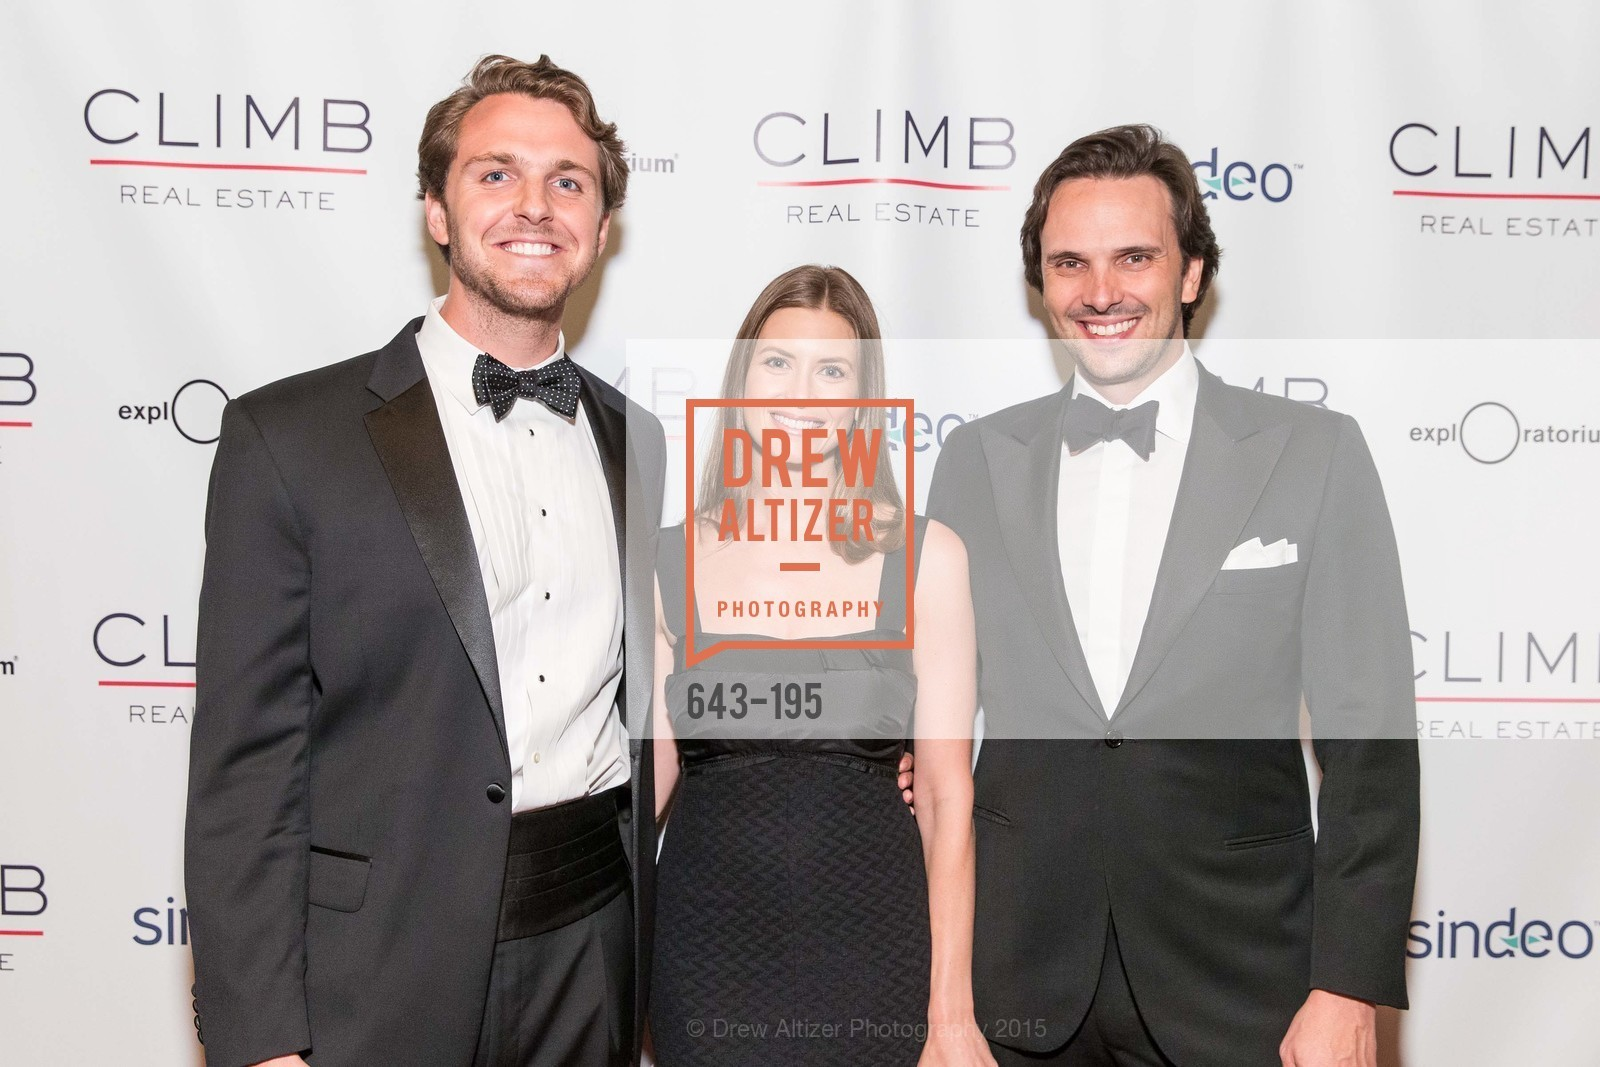 Christian Cimmino, Stephanie Southerland, Will Harbin, Climb Real Estate and Sindeo Celebrate the Launch of Million Dollar Listing San Francisco, Local Edition San Francisco. 691 Market St, July 8th, 2015,Drew Altizer, Drew Altizer Photography, full-service agency, private events, San Francisco photographer, photographer california